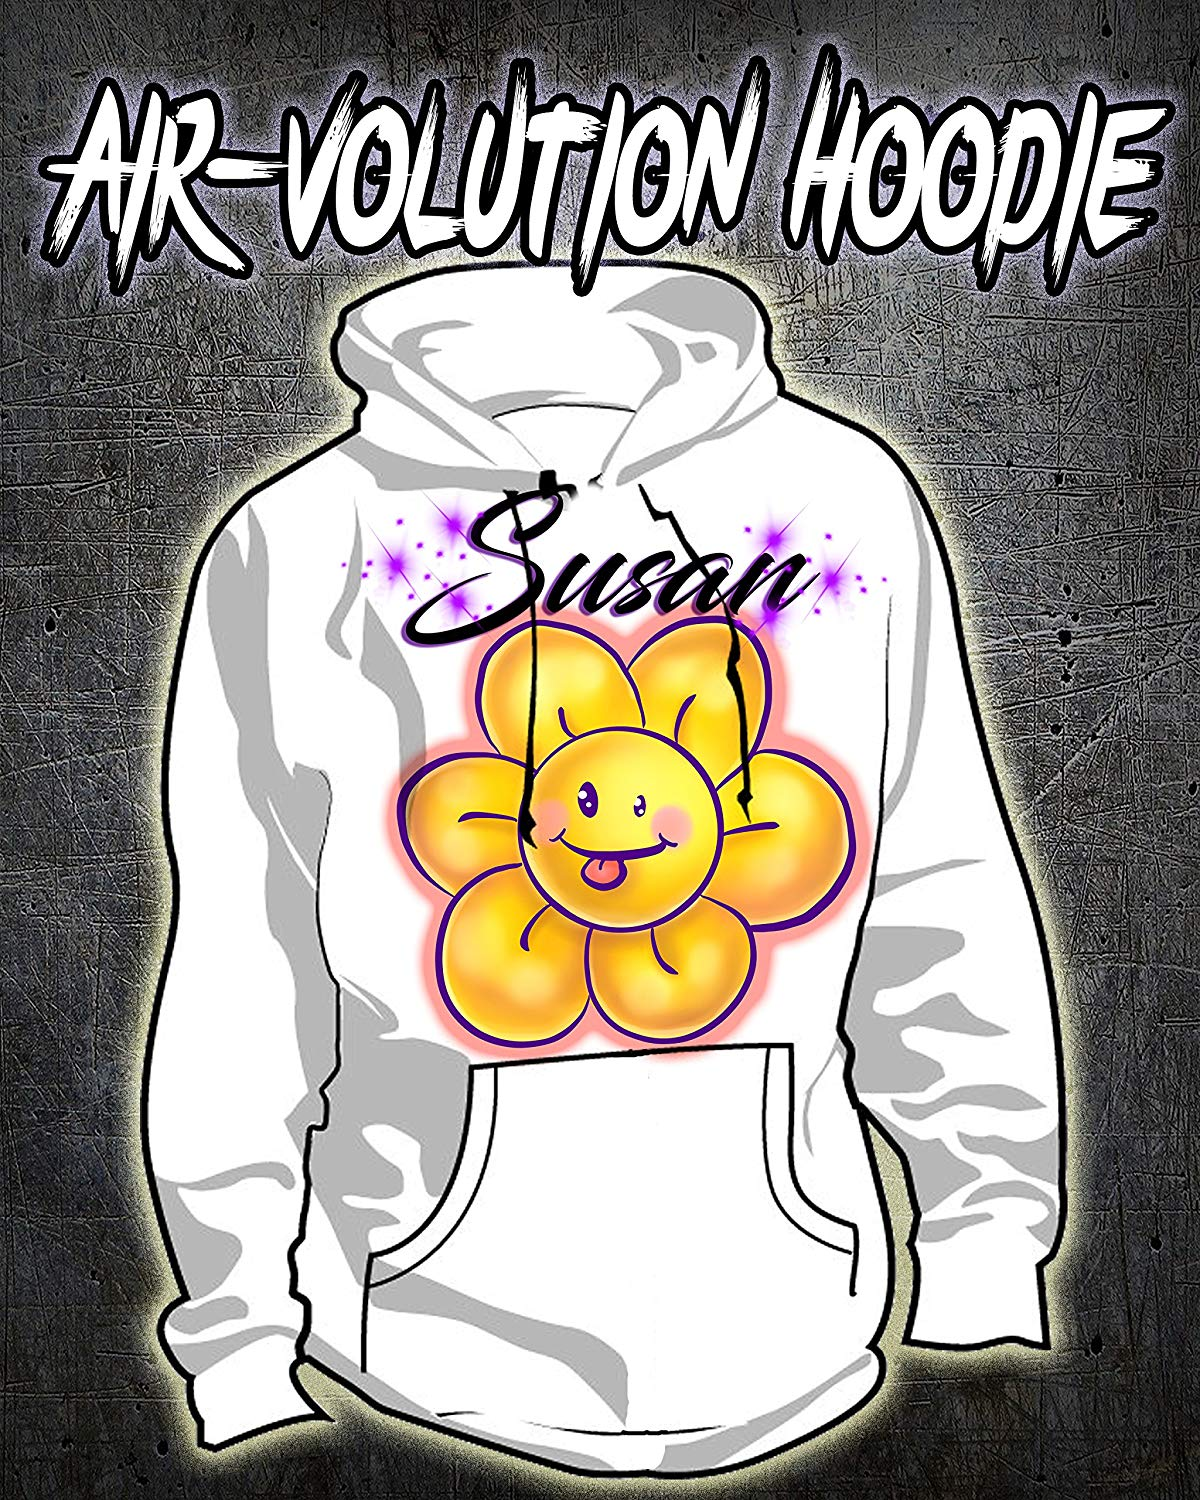 Personalized Airbrush Flower Smiley Hoodie